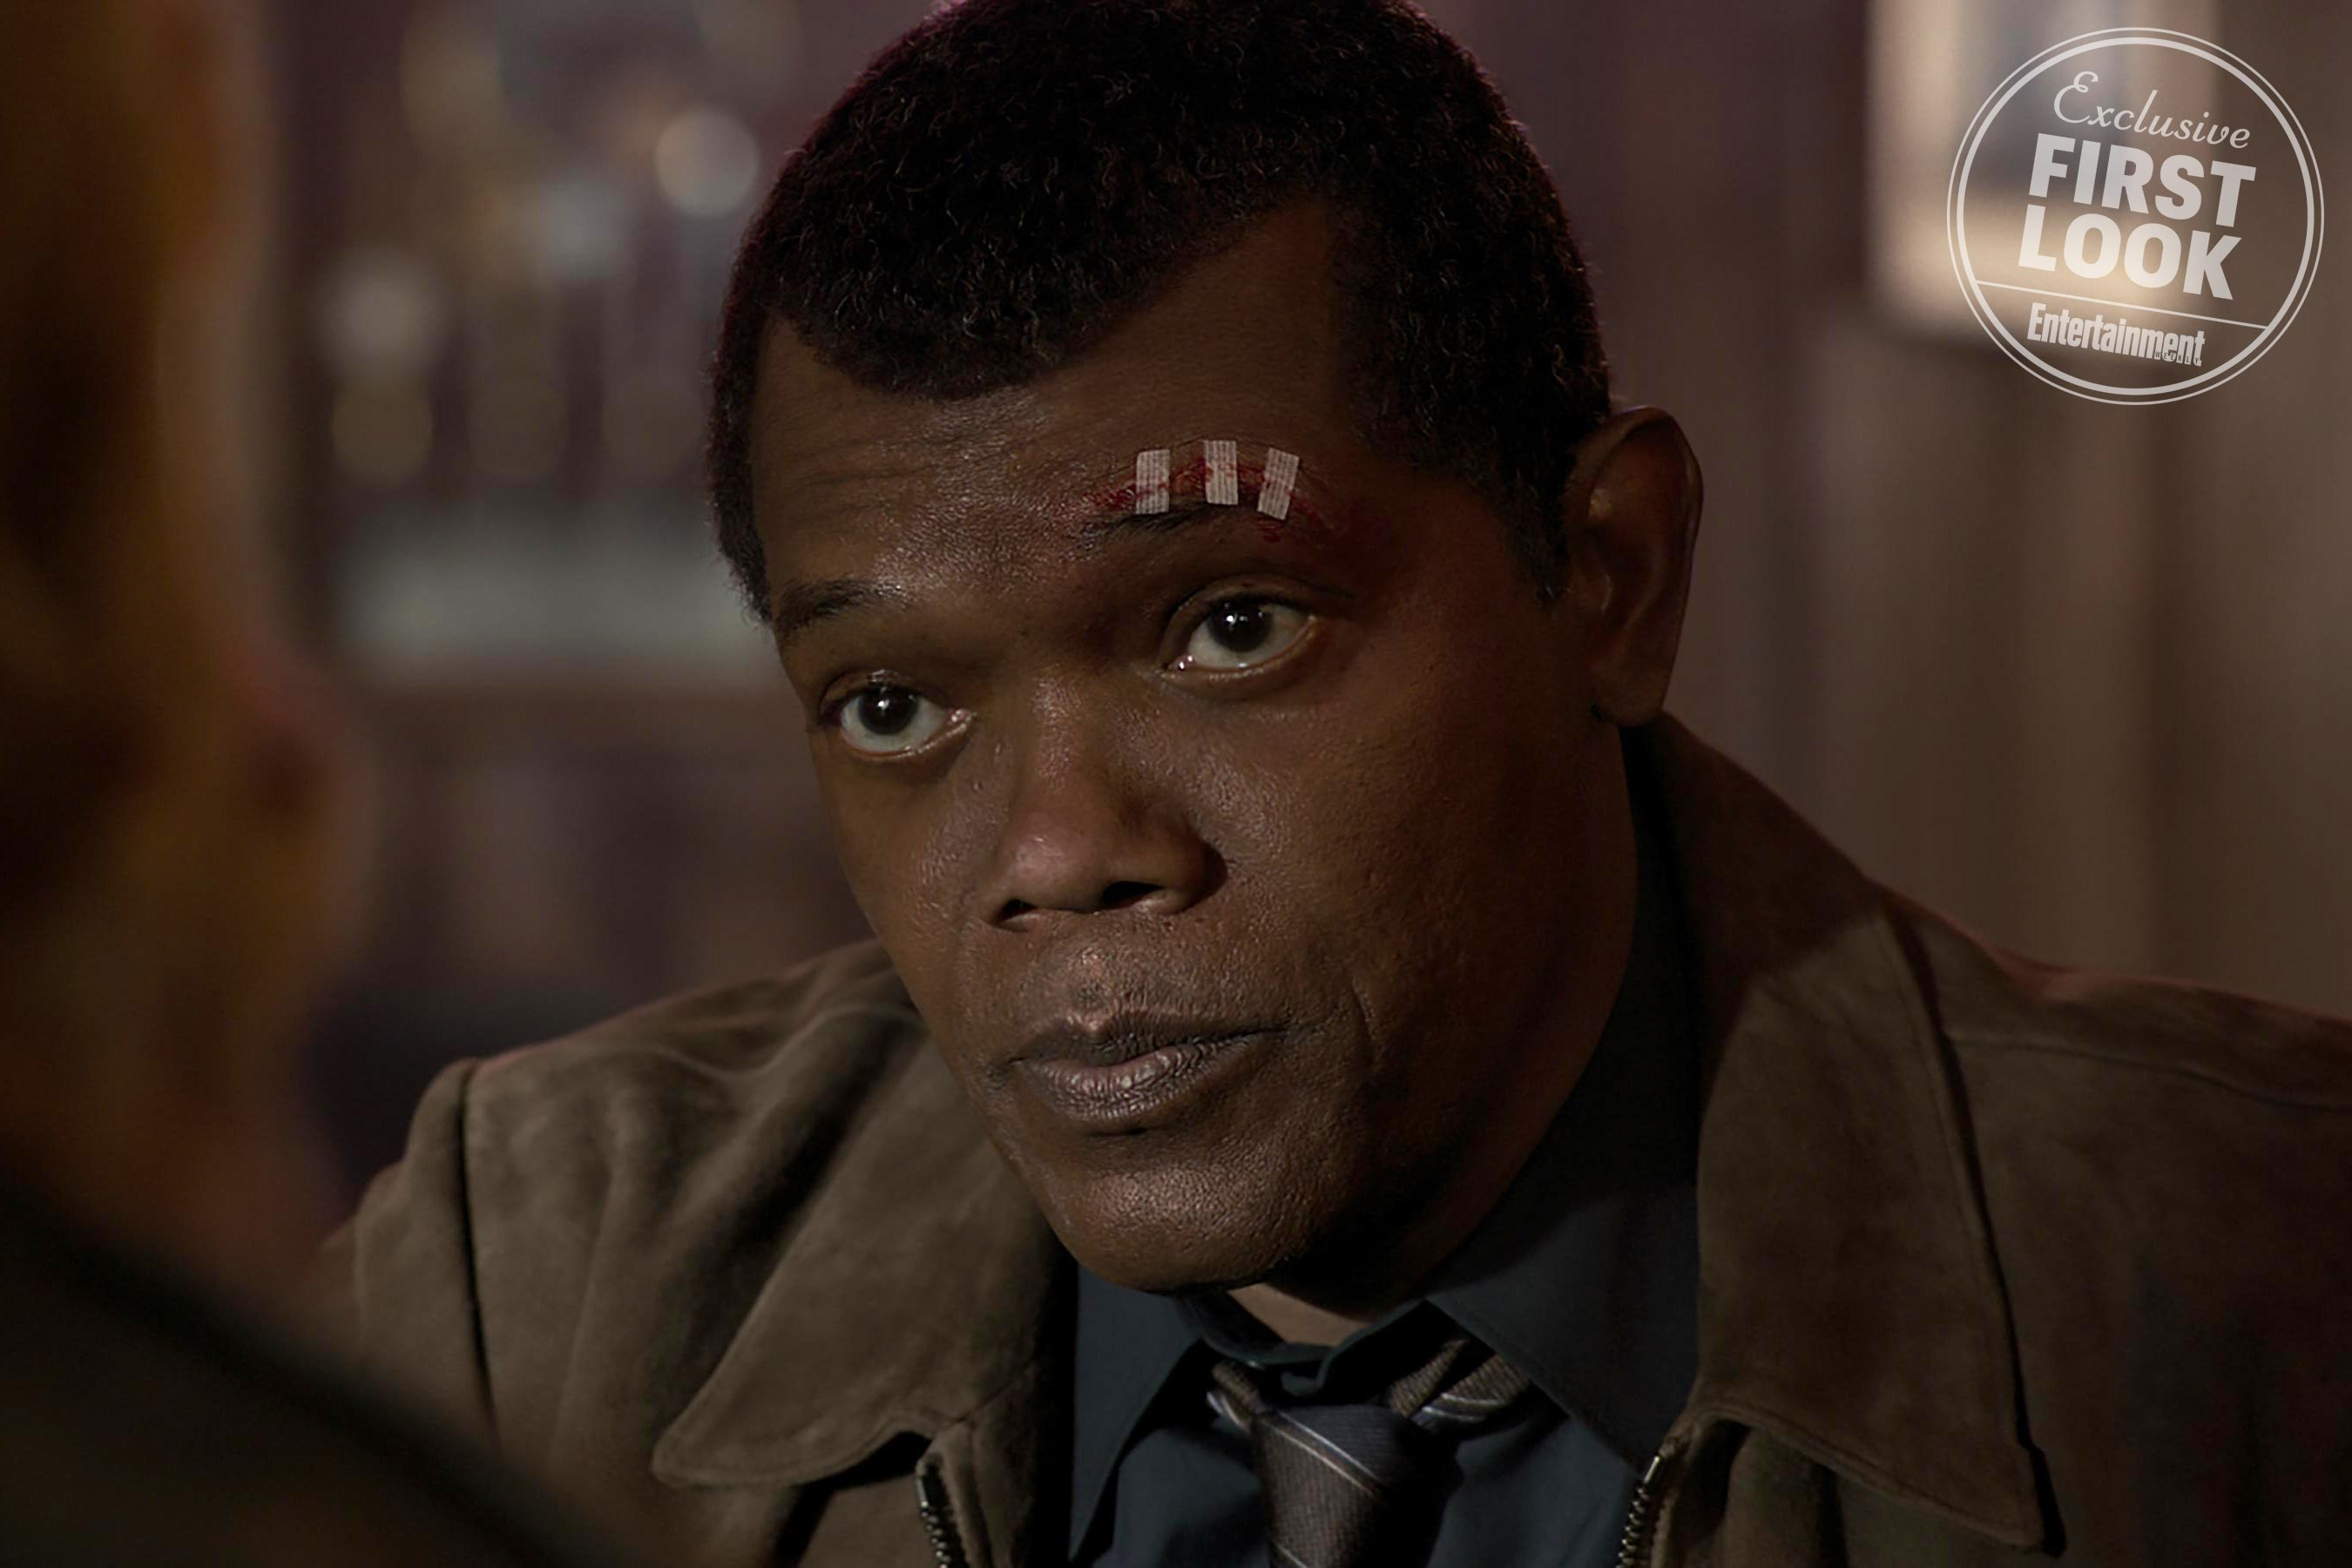 Samuel L. Jackson as a younger Nick Fury